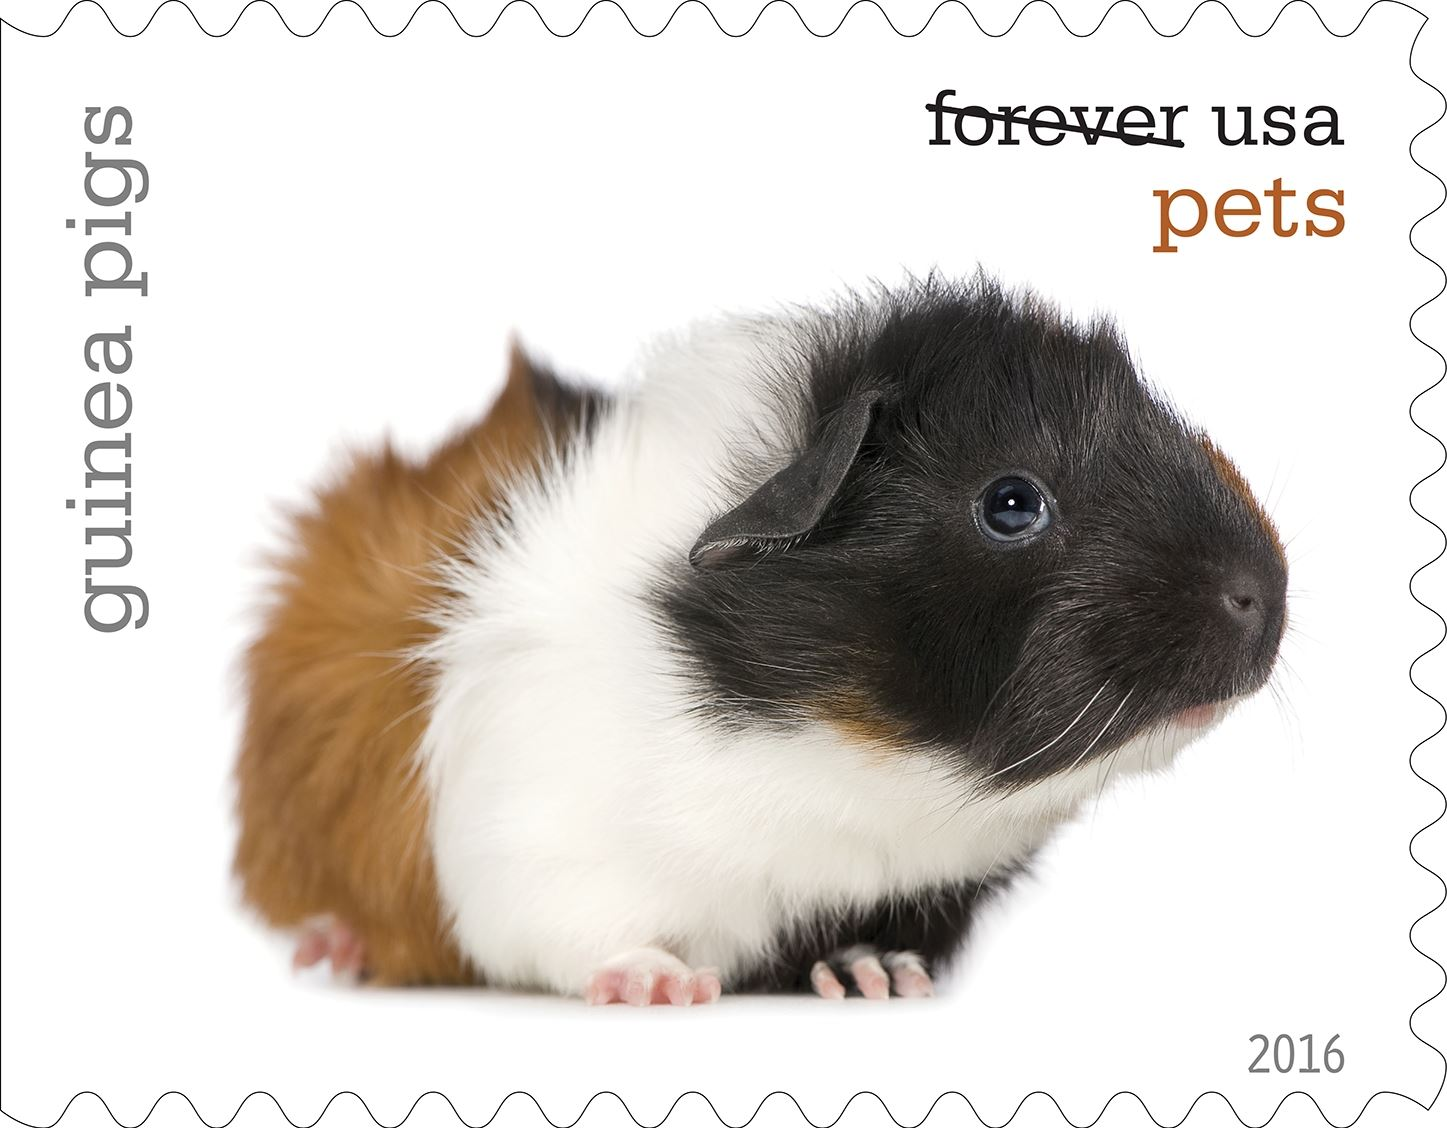 8-0_USPS16STA004i-17 Guinea Pigs will be among the pets celebrated in an upcoming set of Forever stamps issued by the U.S. Postal Service.